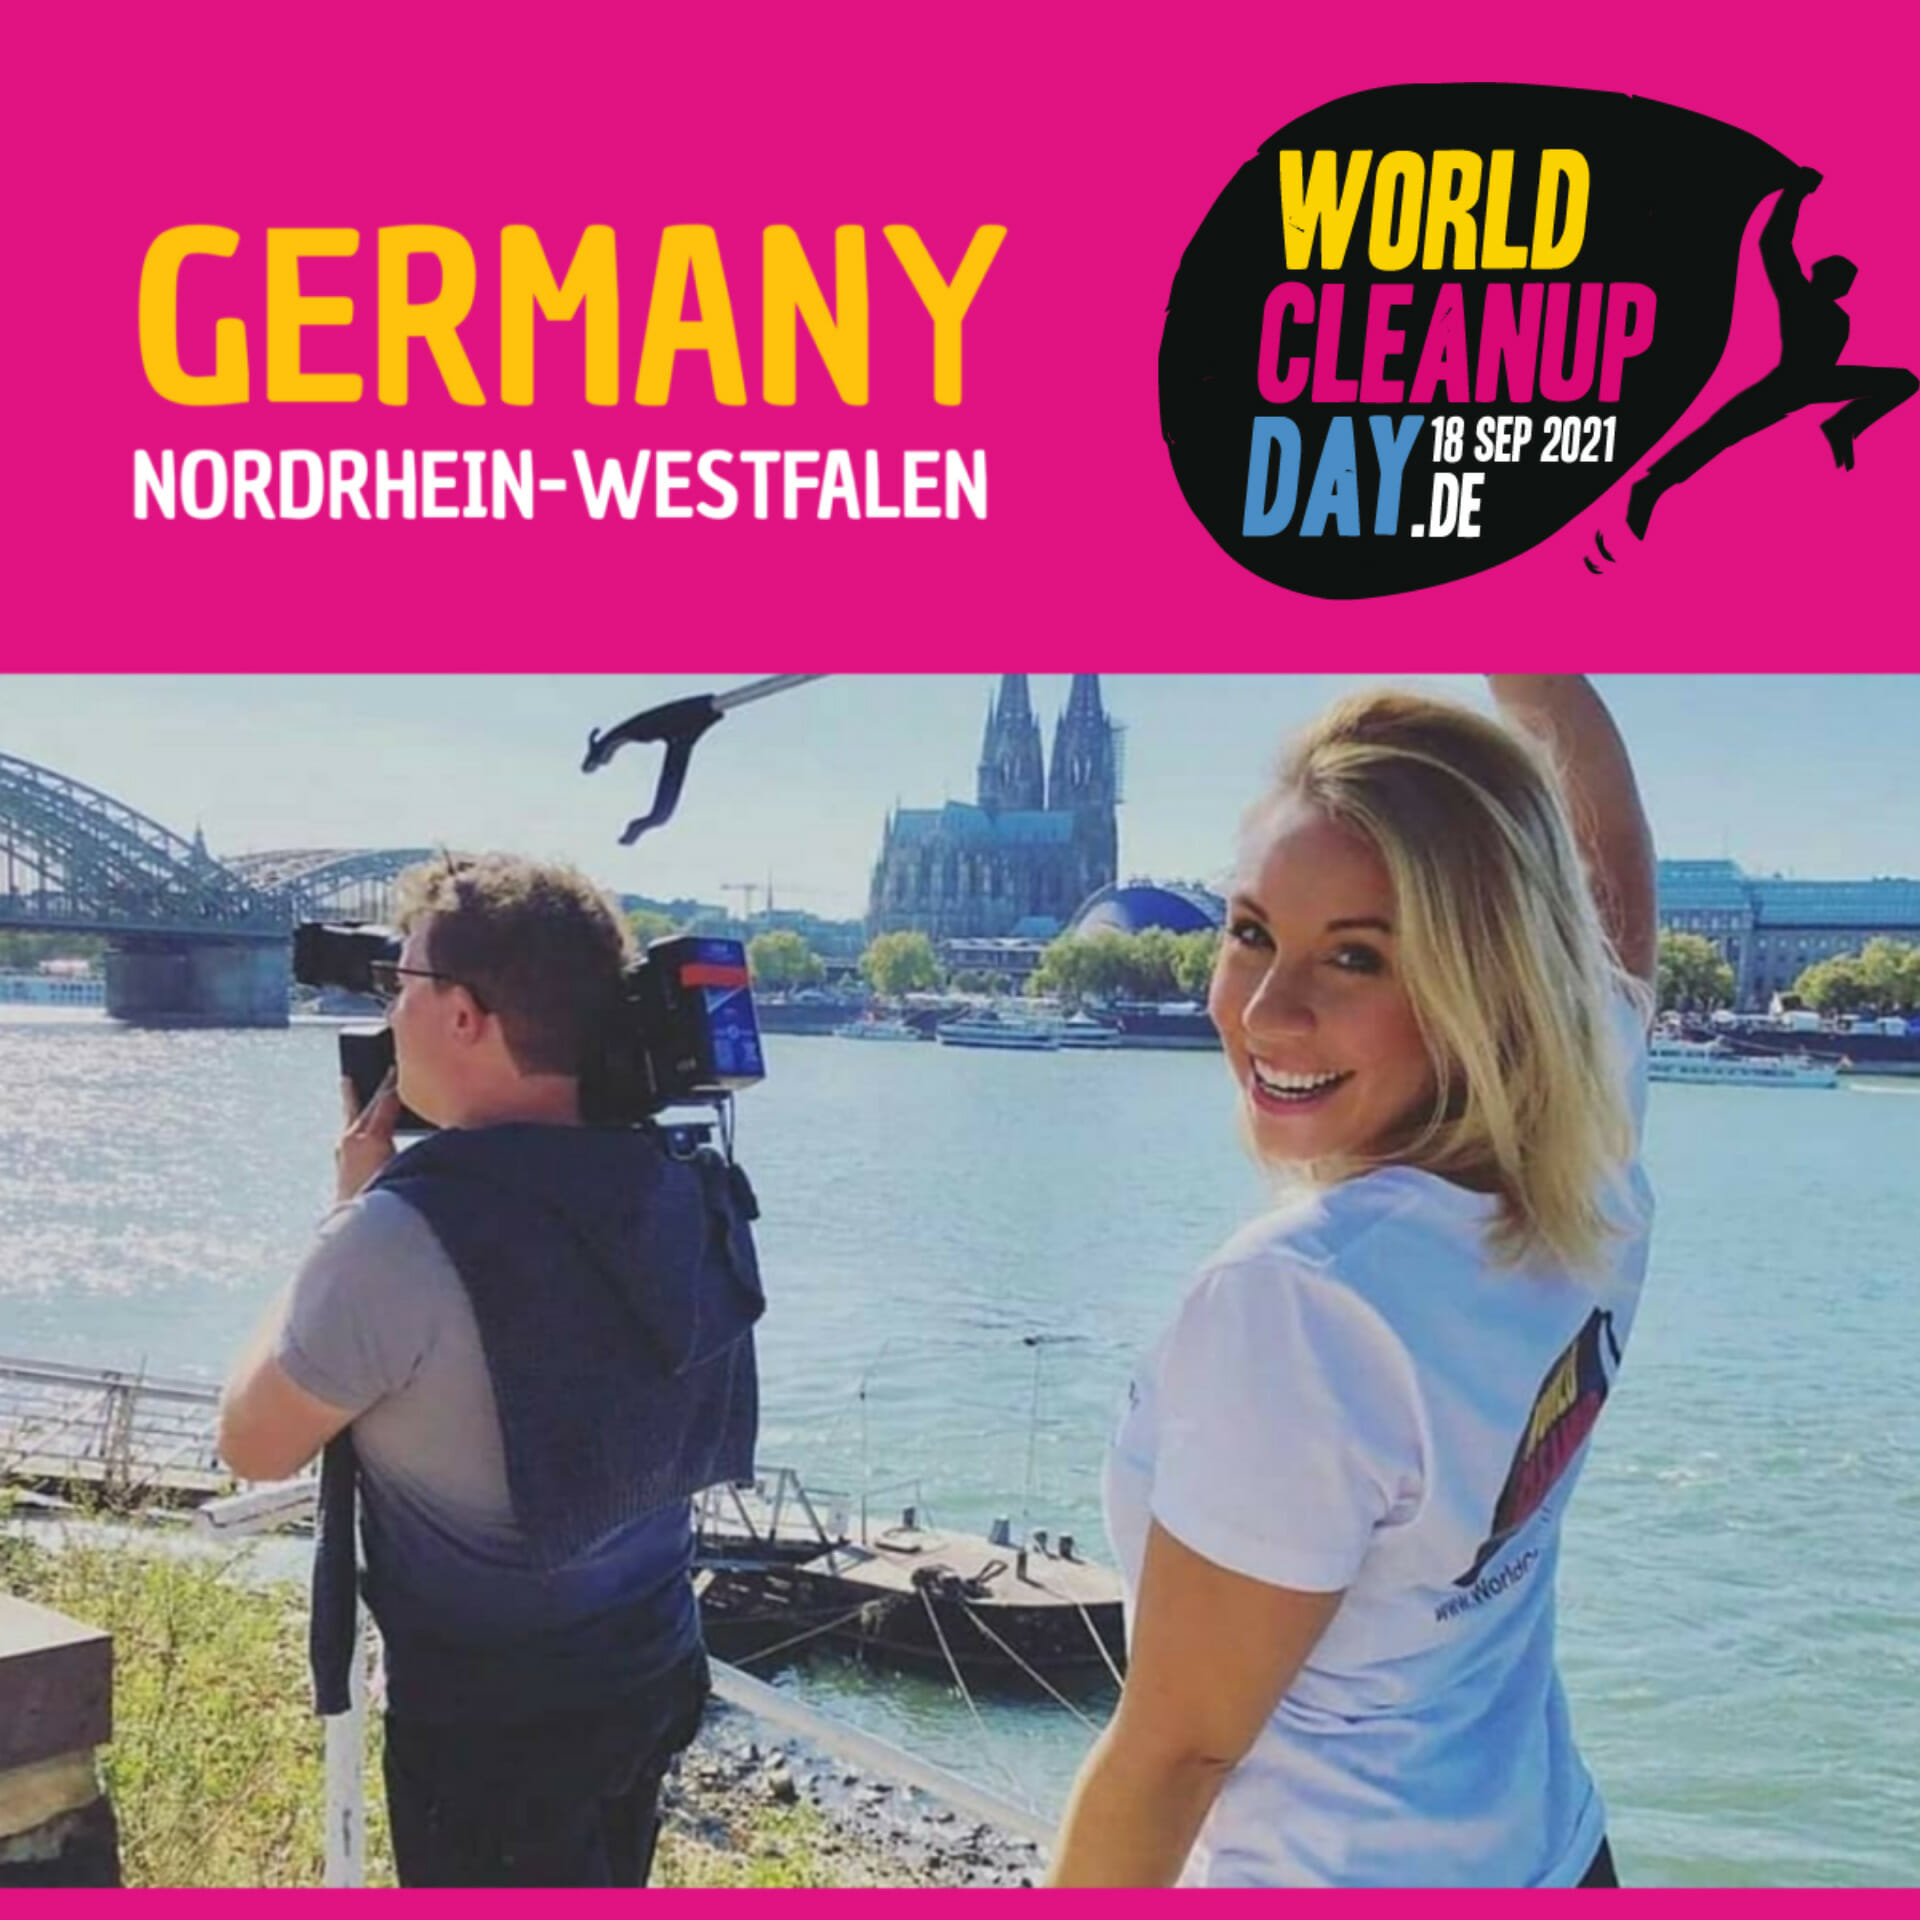 Cleanup Bensberg am World Cleanup Day  - (NRW)